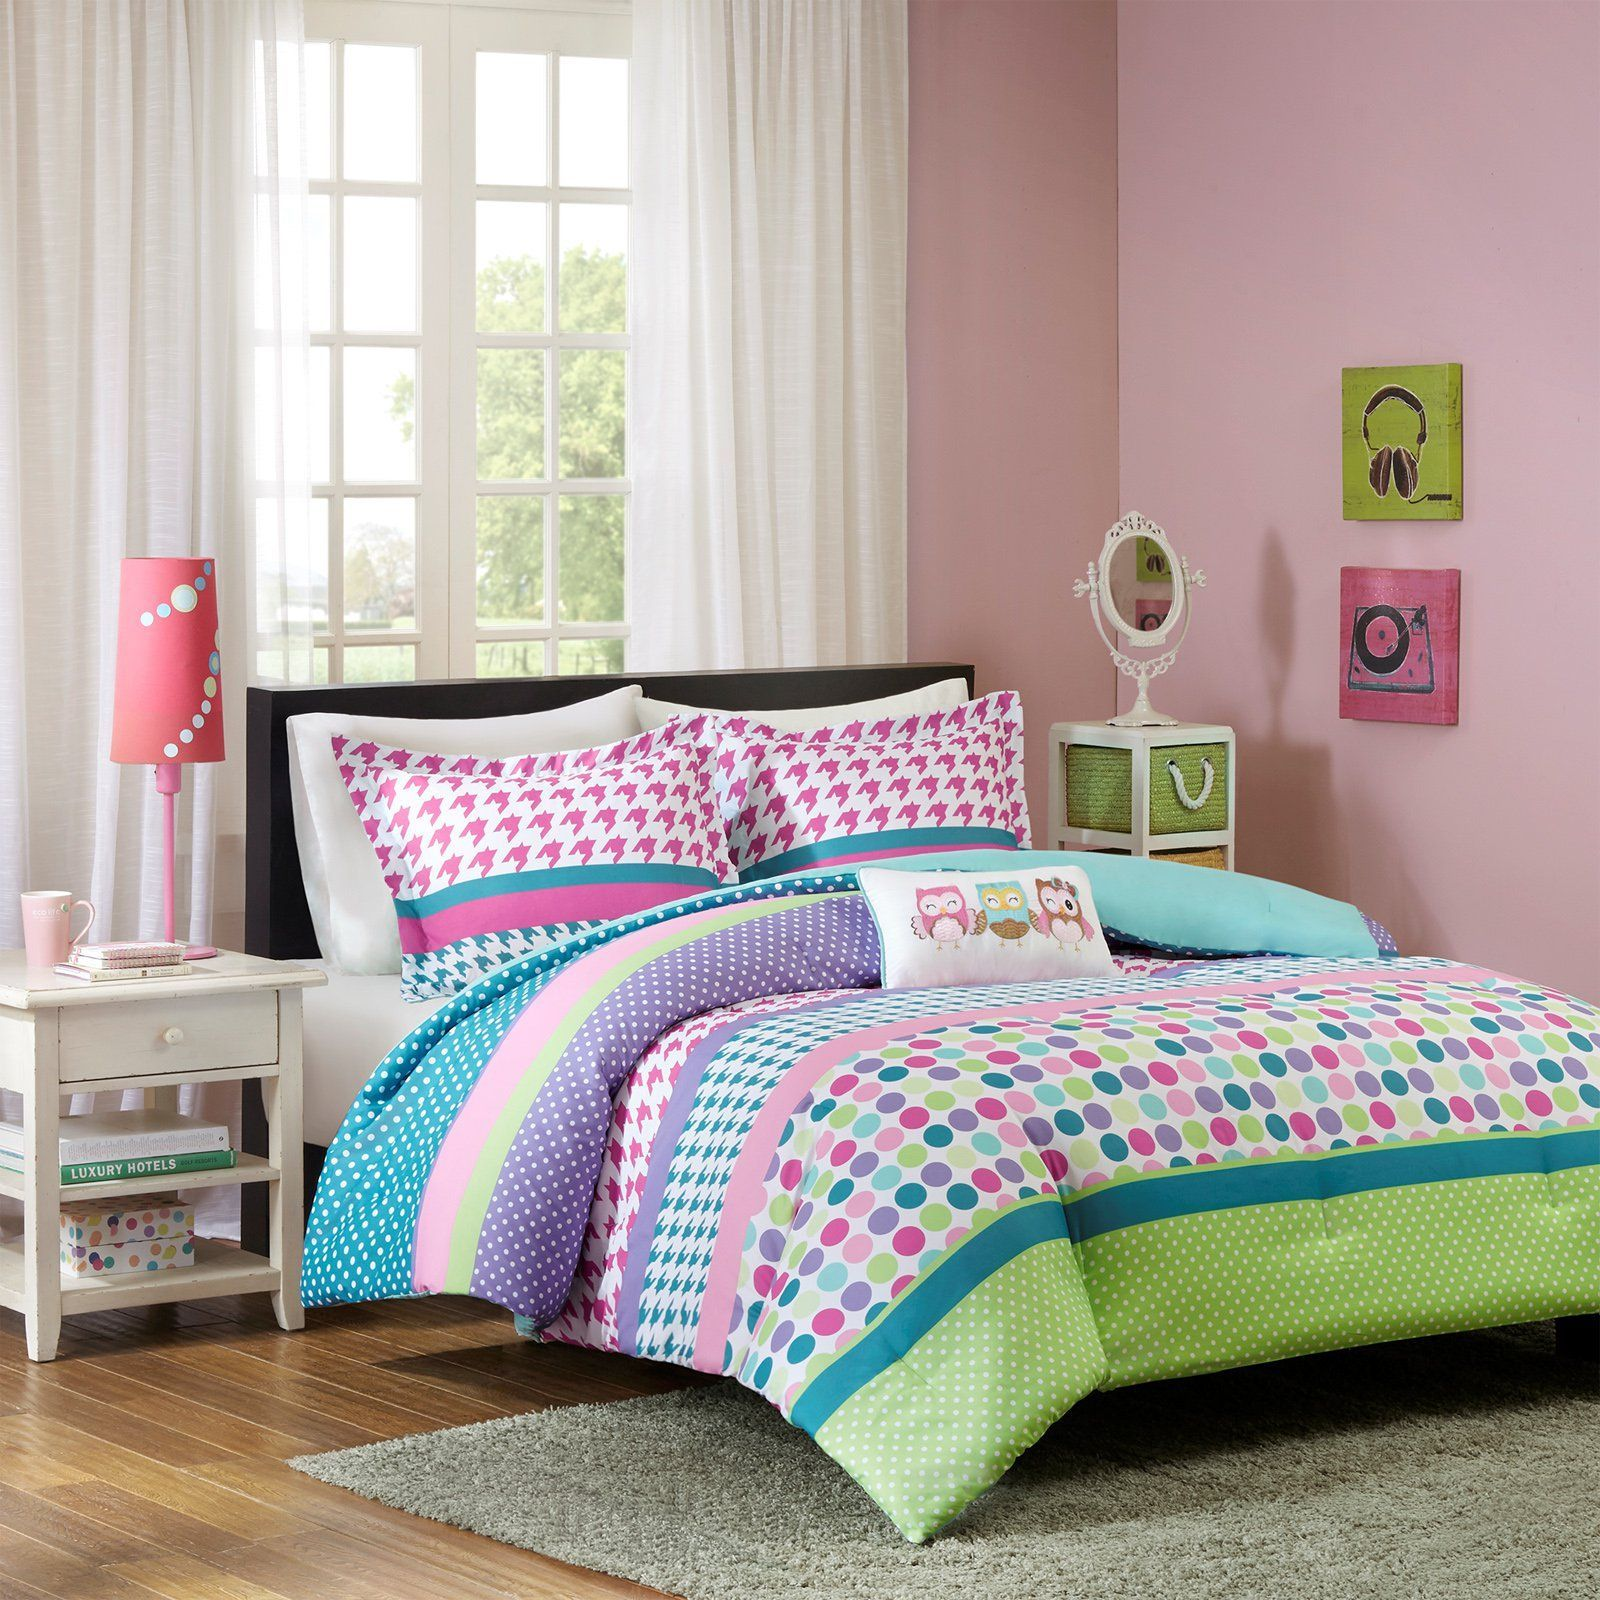 Jenny 3 Piece Comforter Set By MiZone   Wide Stripes Filled With Fun Polka  Dots And